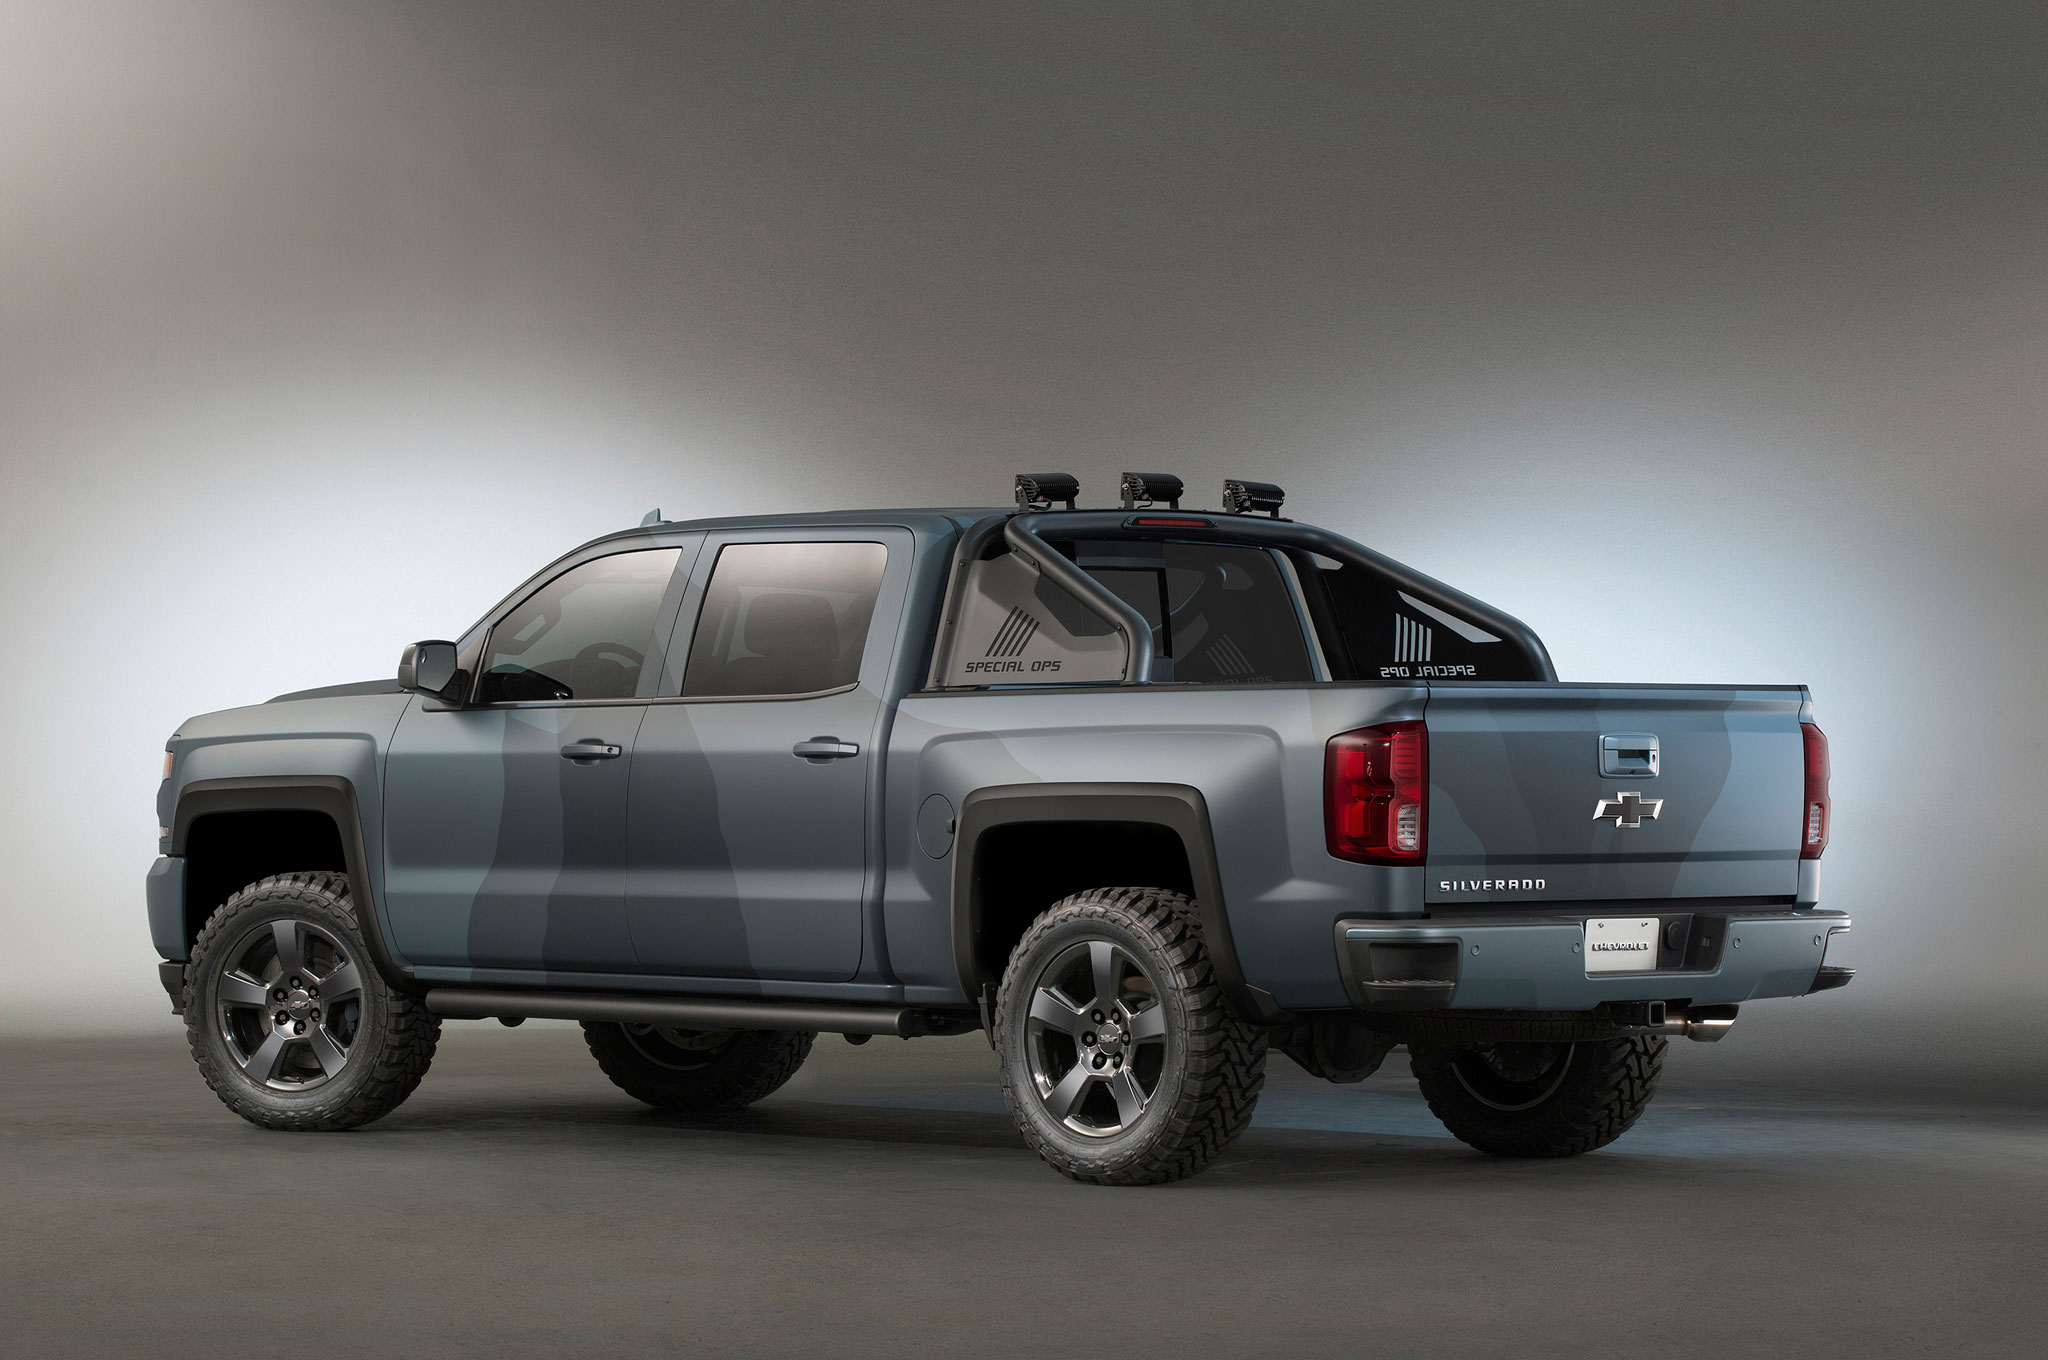 Chevrolet Silverado Kid Rock, Special Ops Concepts Unveiled at SEMA